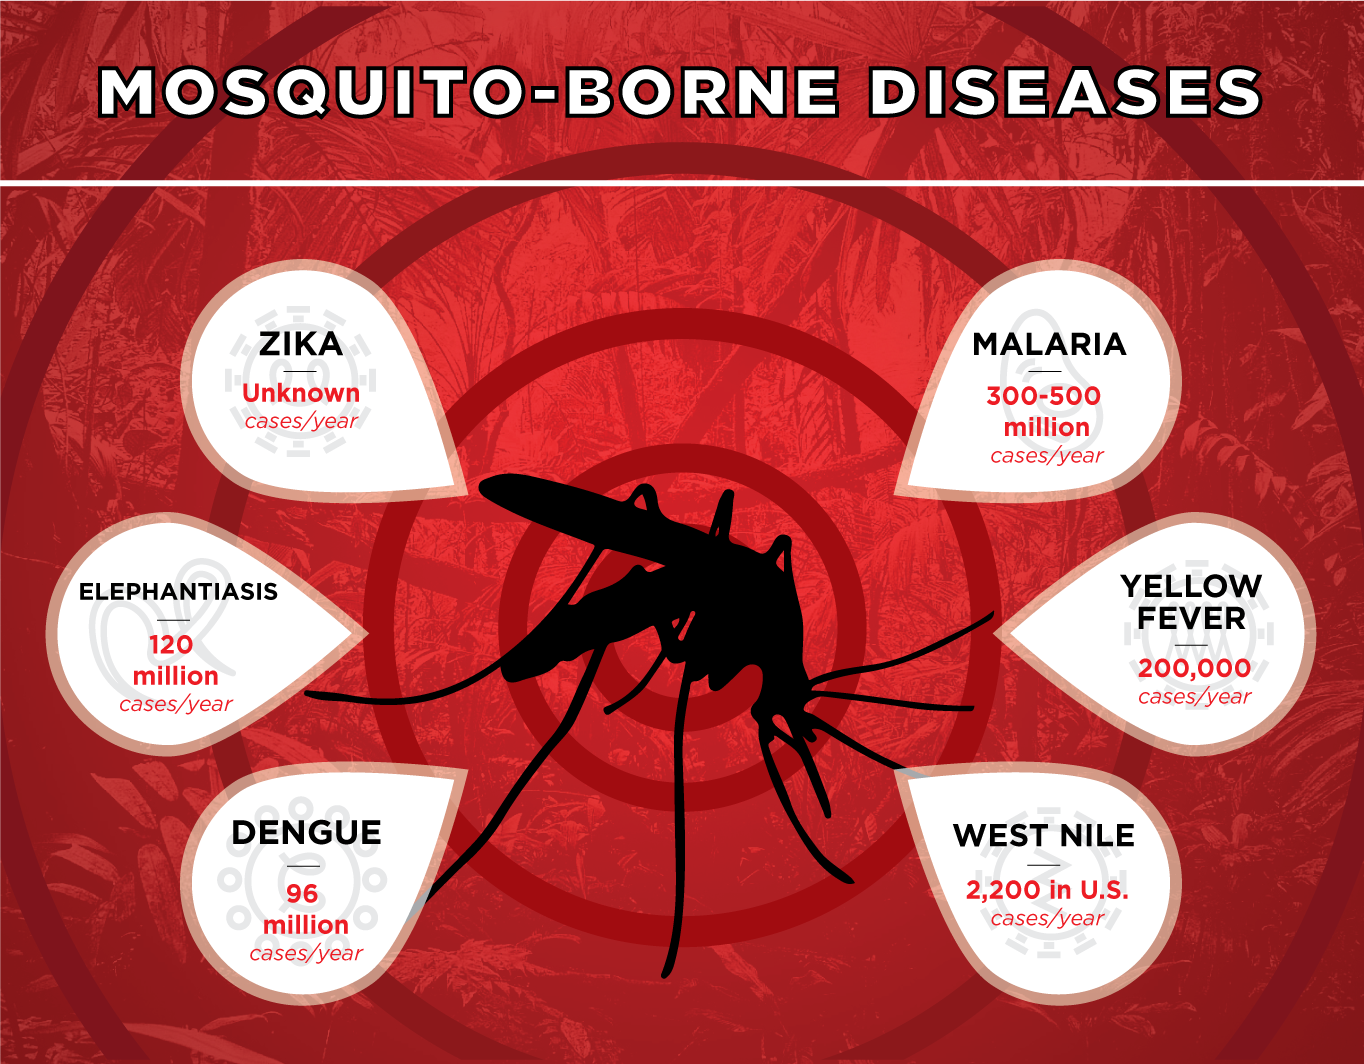 Mosquito-Borne Disease - Zika unknown cases/year, Malaria 300-500 million cases/year, Elephantiasis 120 million cases/year, Yellow Fever 200,000 cases/year, Dengue 96 million cases/year, West Nile 2,200 in U.S. cases/year